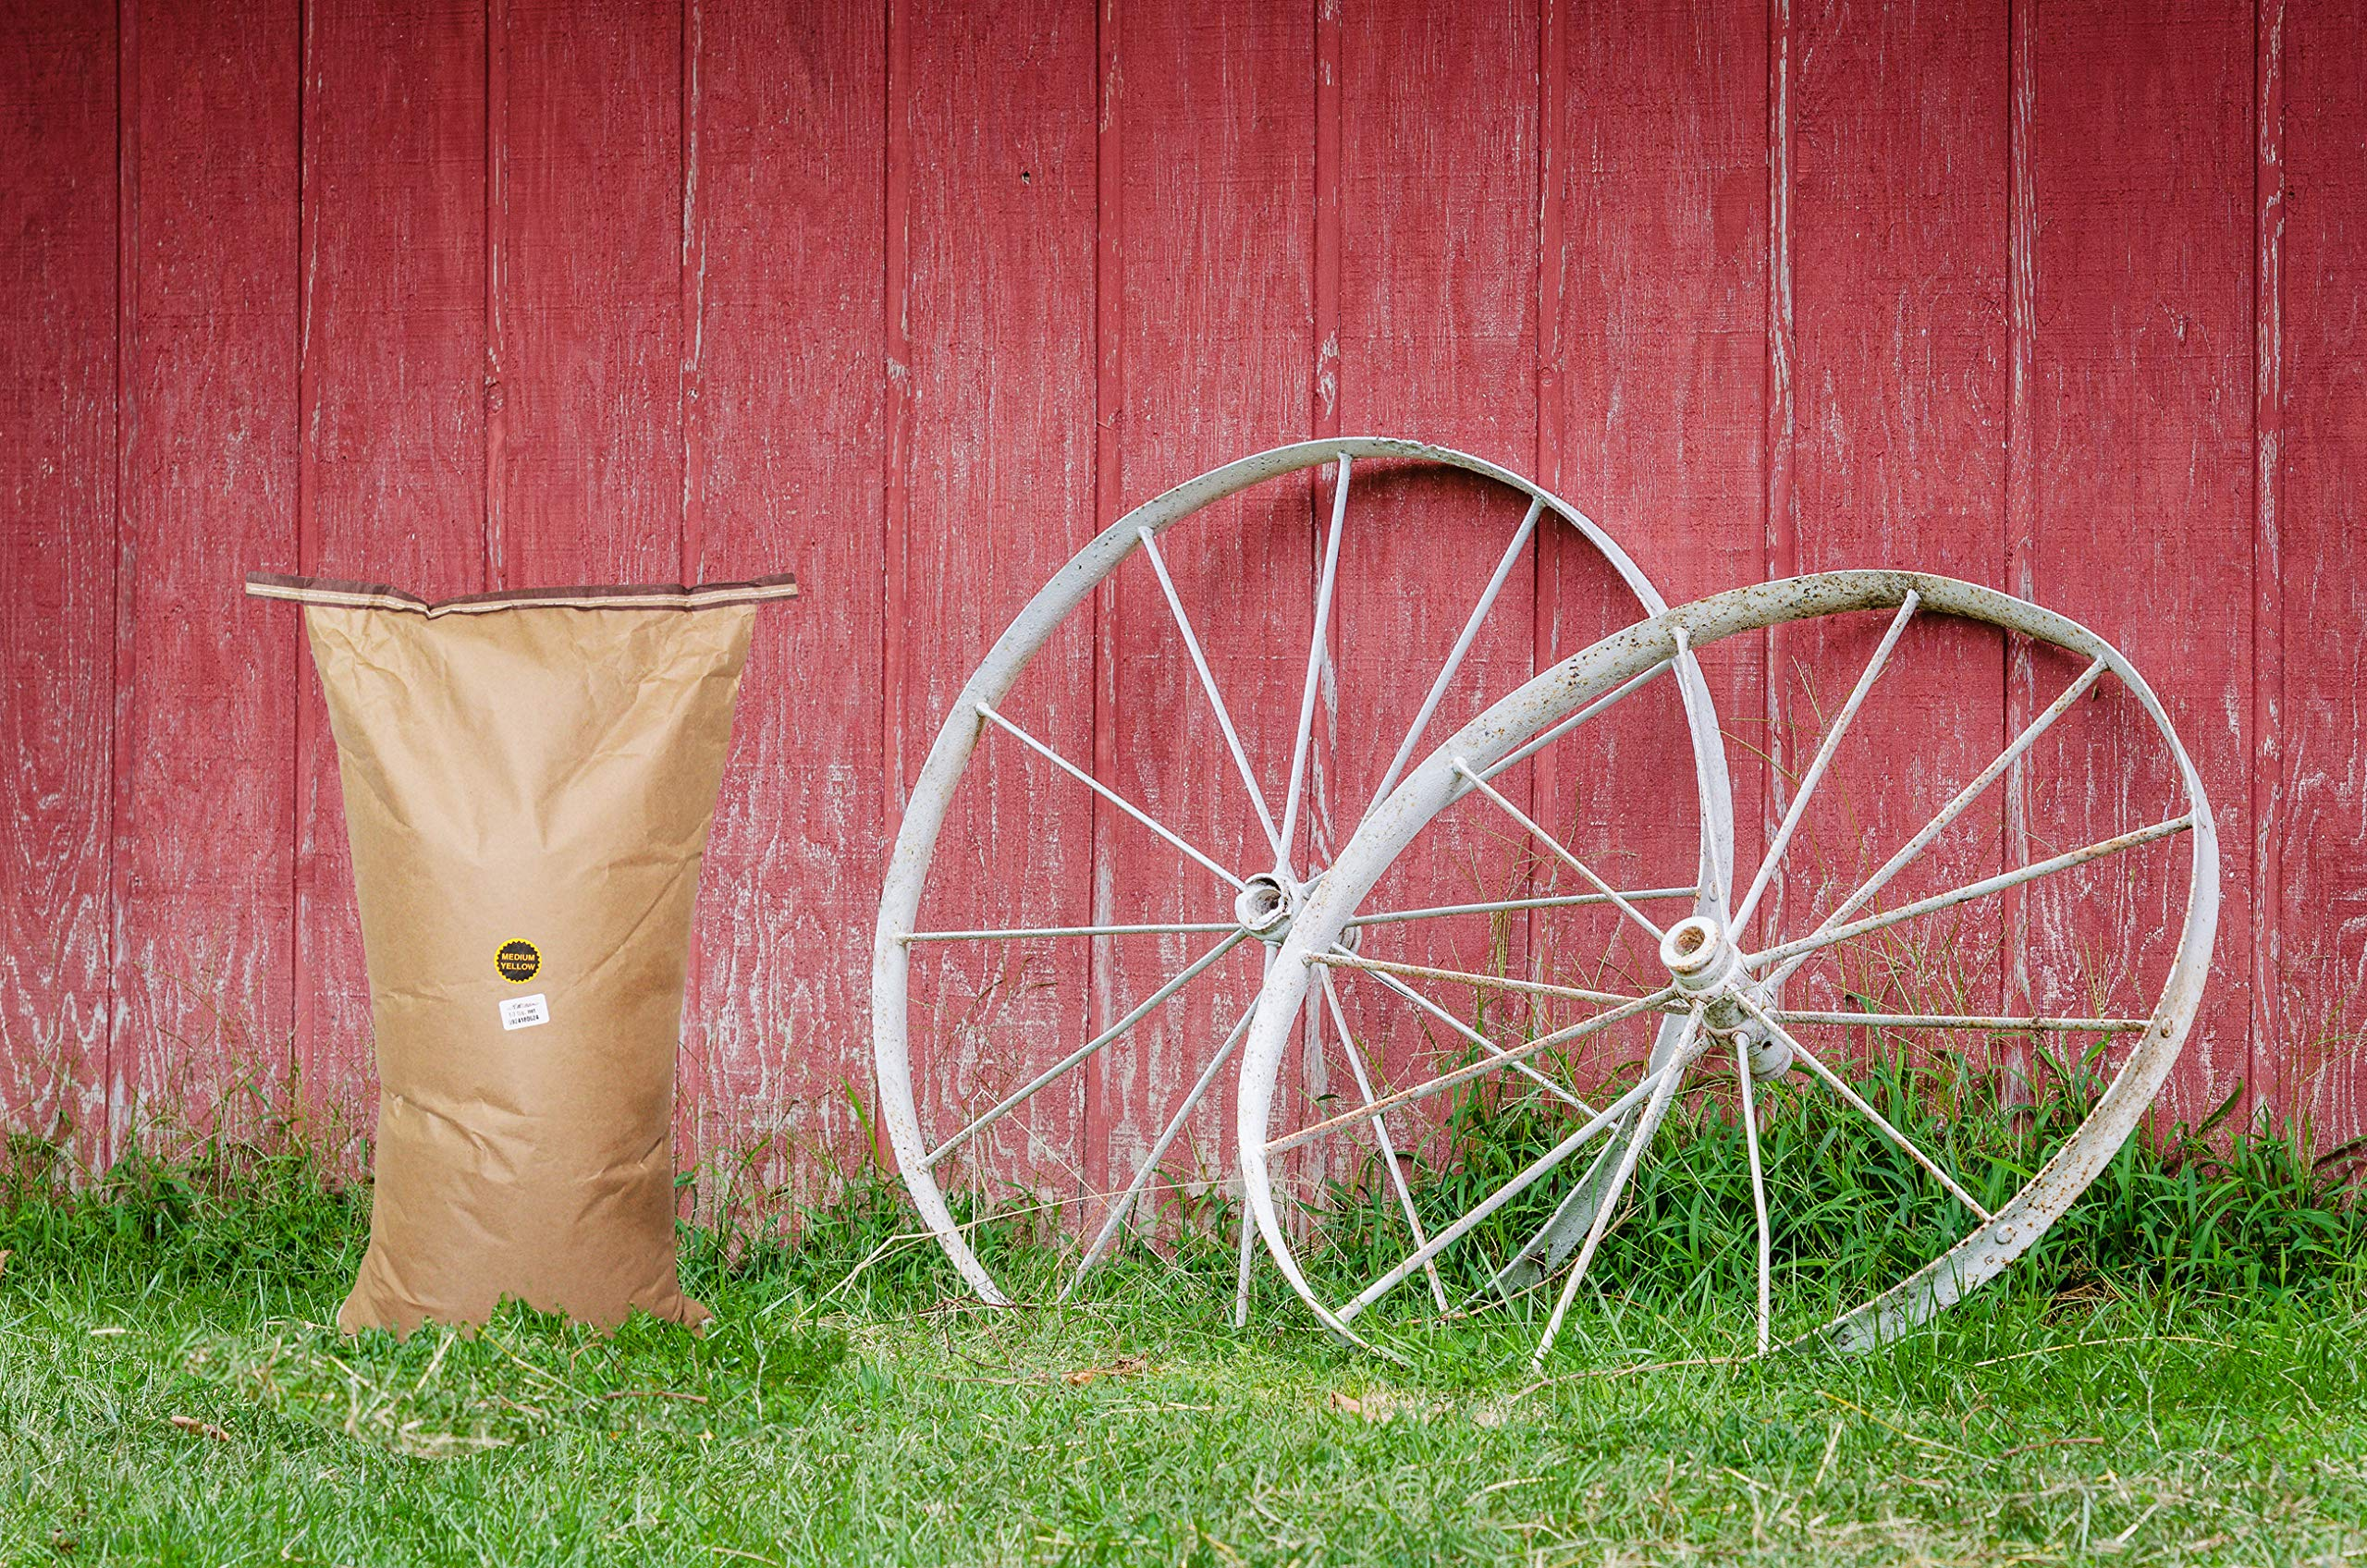 Amish Country Popcorn - 50 Pound Baby White - Small & Tender Popcorn - Perfect for Fundraisers - Non GMO, Gluten Free, Microwaveable, Stovetop and Air Popper Friendly With Recipe Guide by Amish Country Popcorn (Image #2)